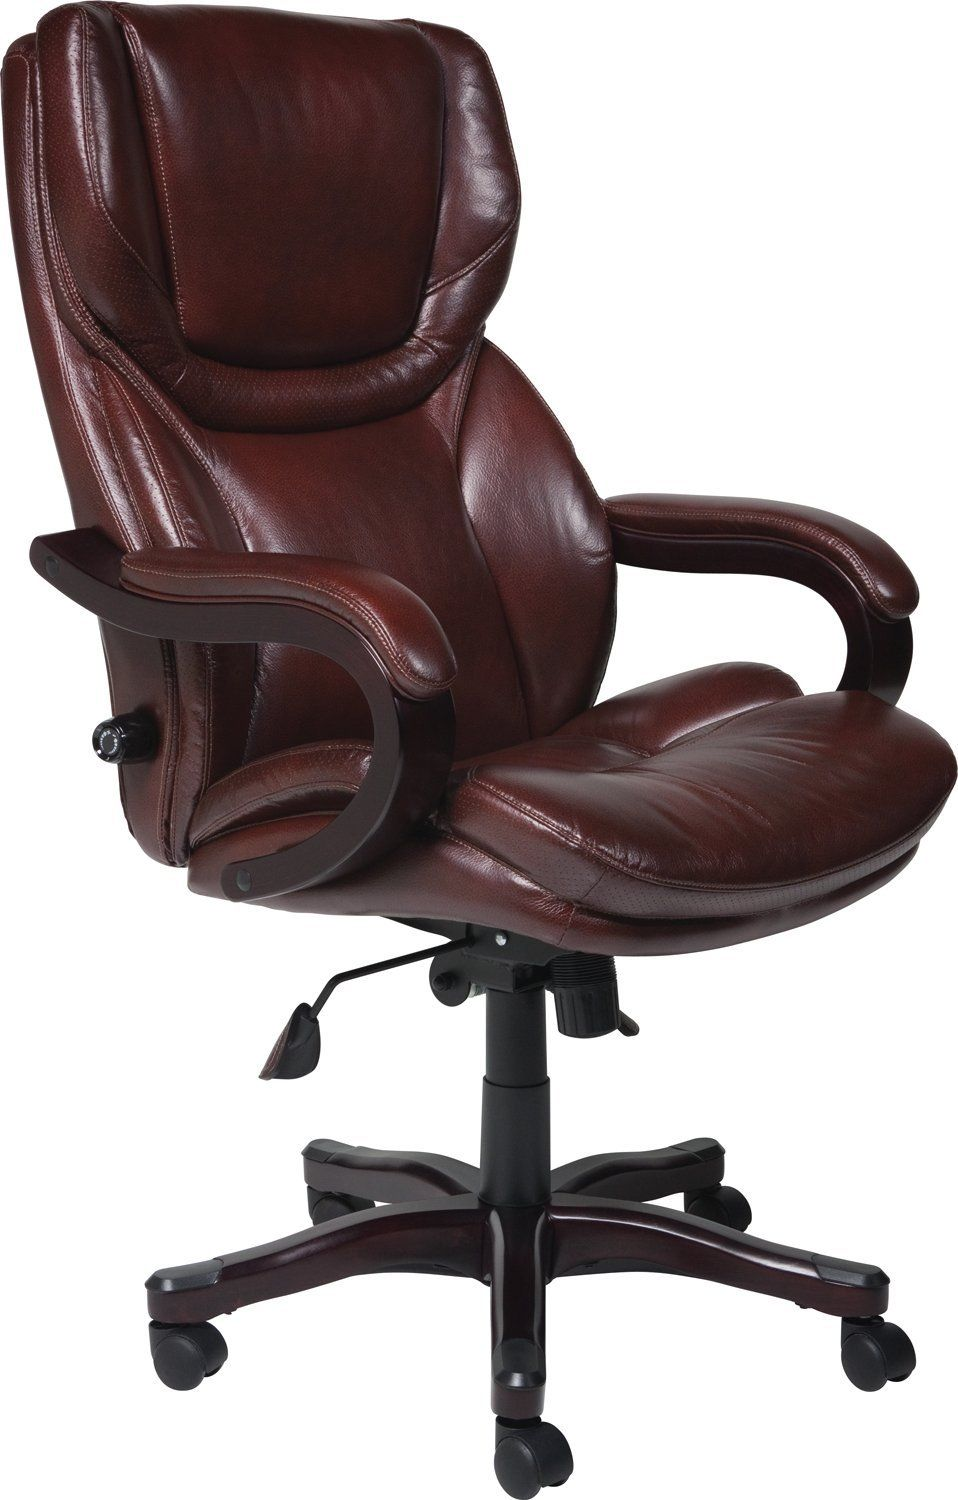 Serta Eco Friendly Bonded Leather Executive Tall Office Chair Dark Redwood The